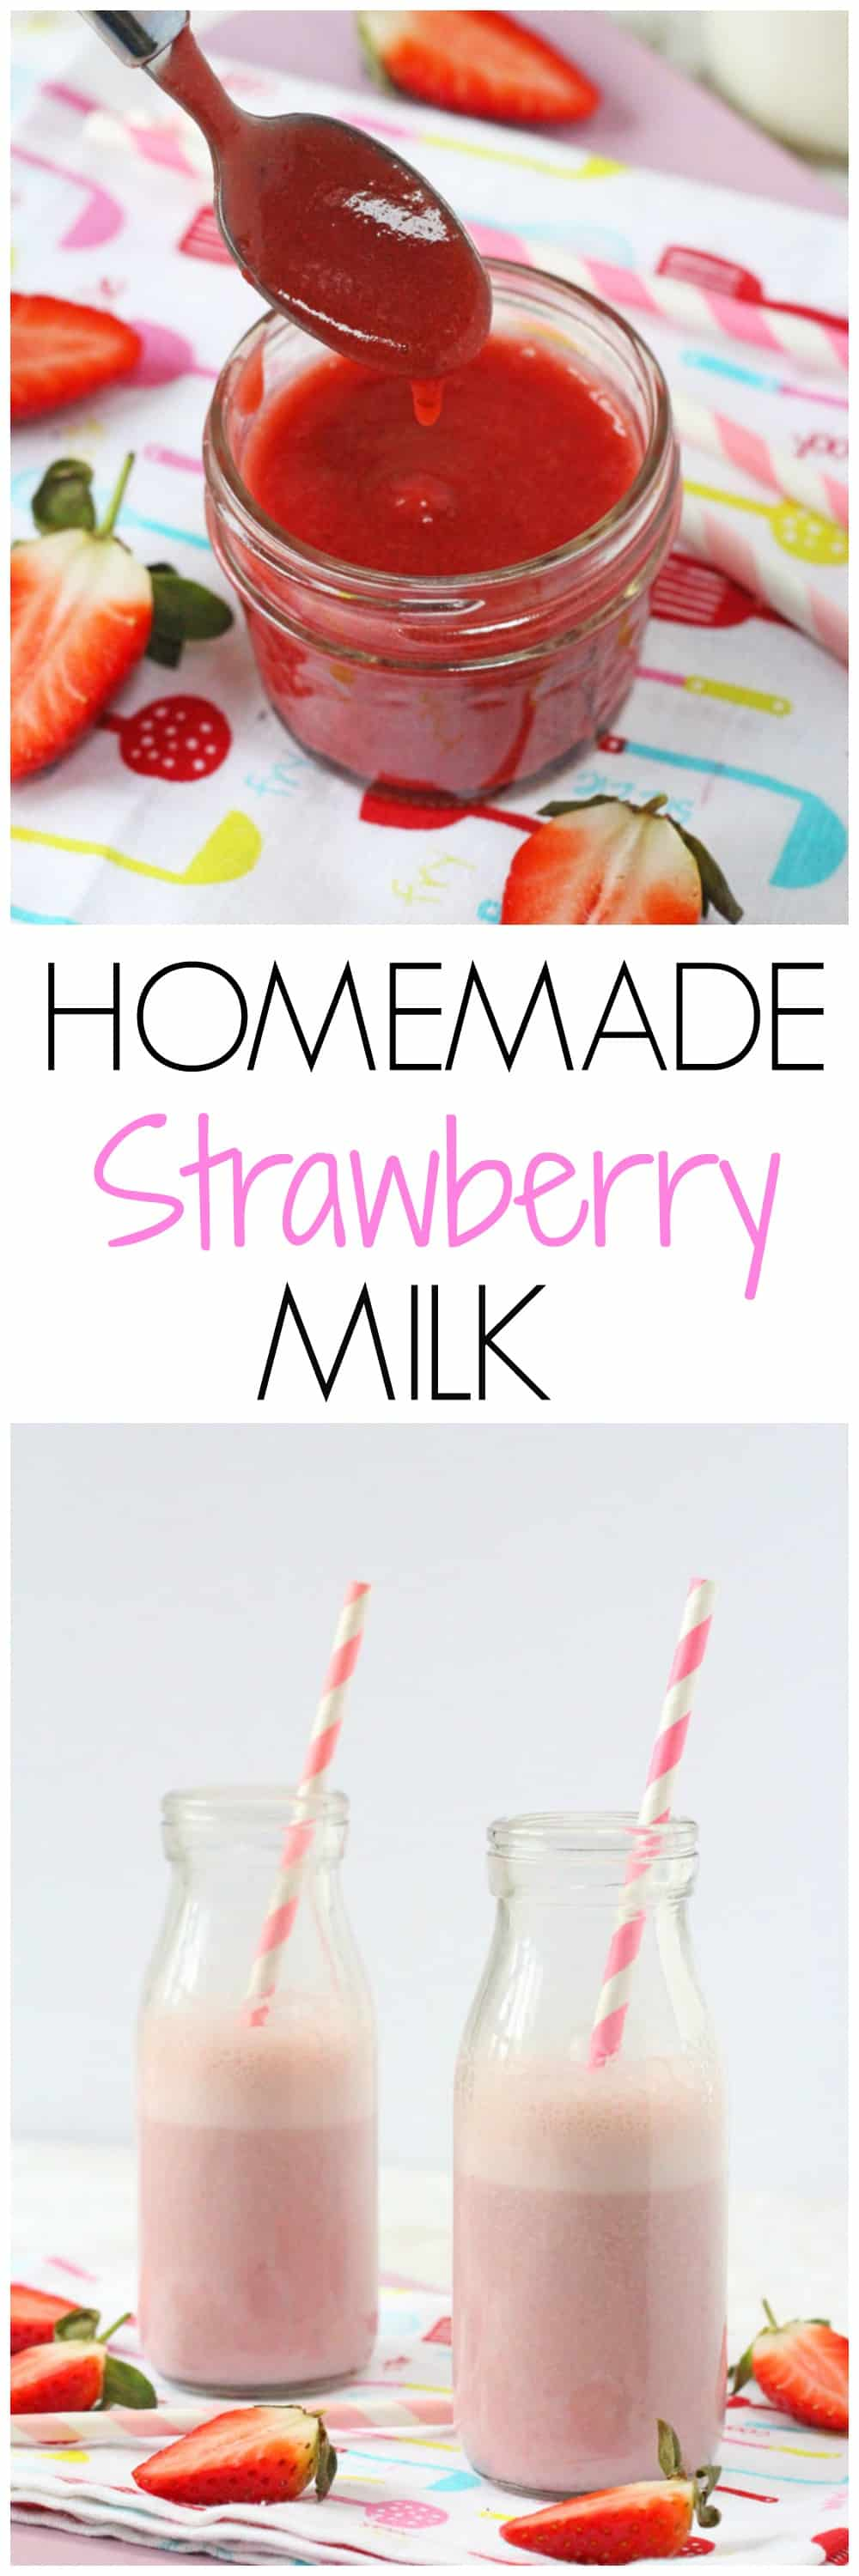 Strawberry Milk is so easy to make at home and much healthier too. The kids will love this! | My Fussy Eater blog